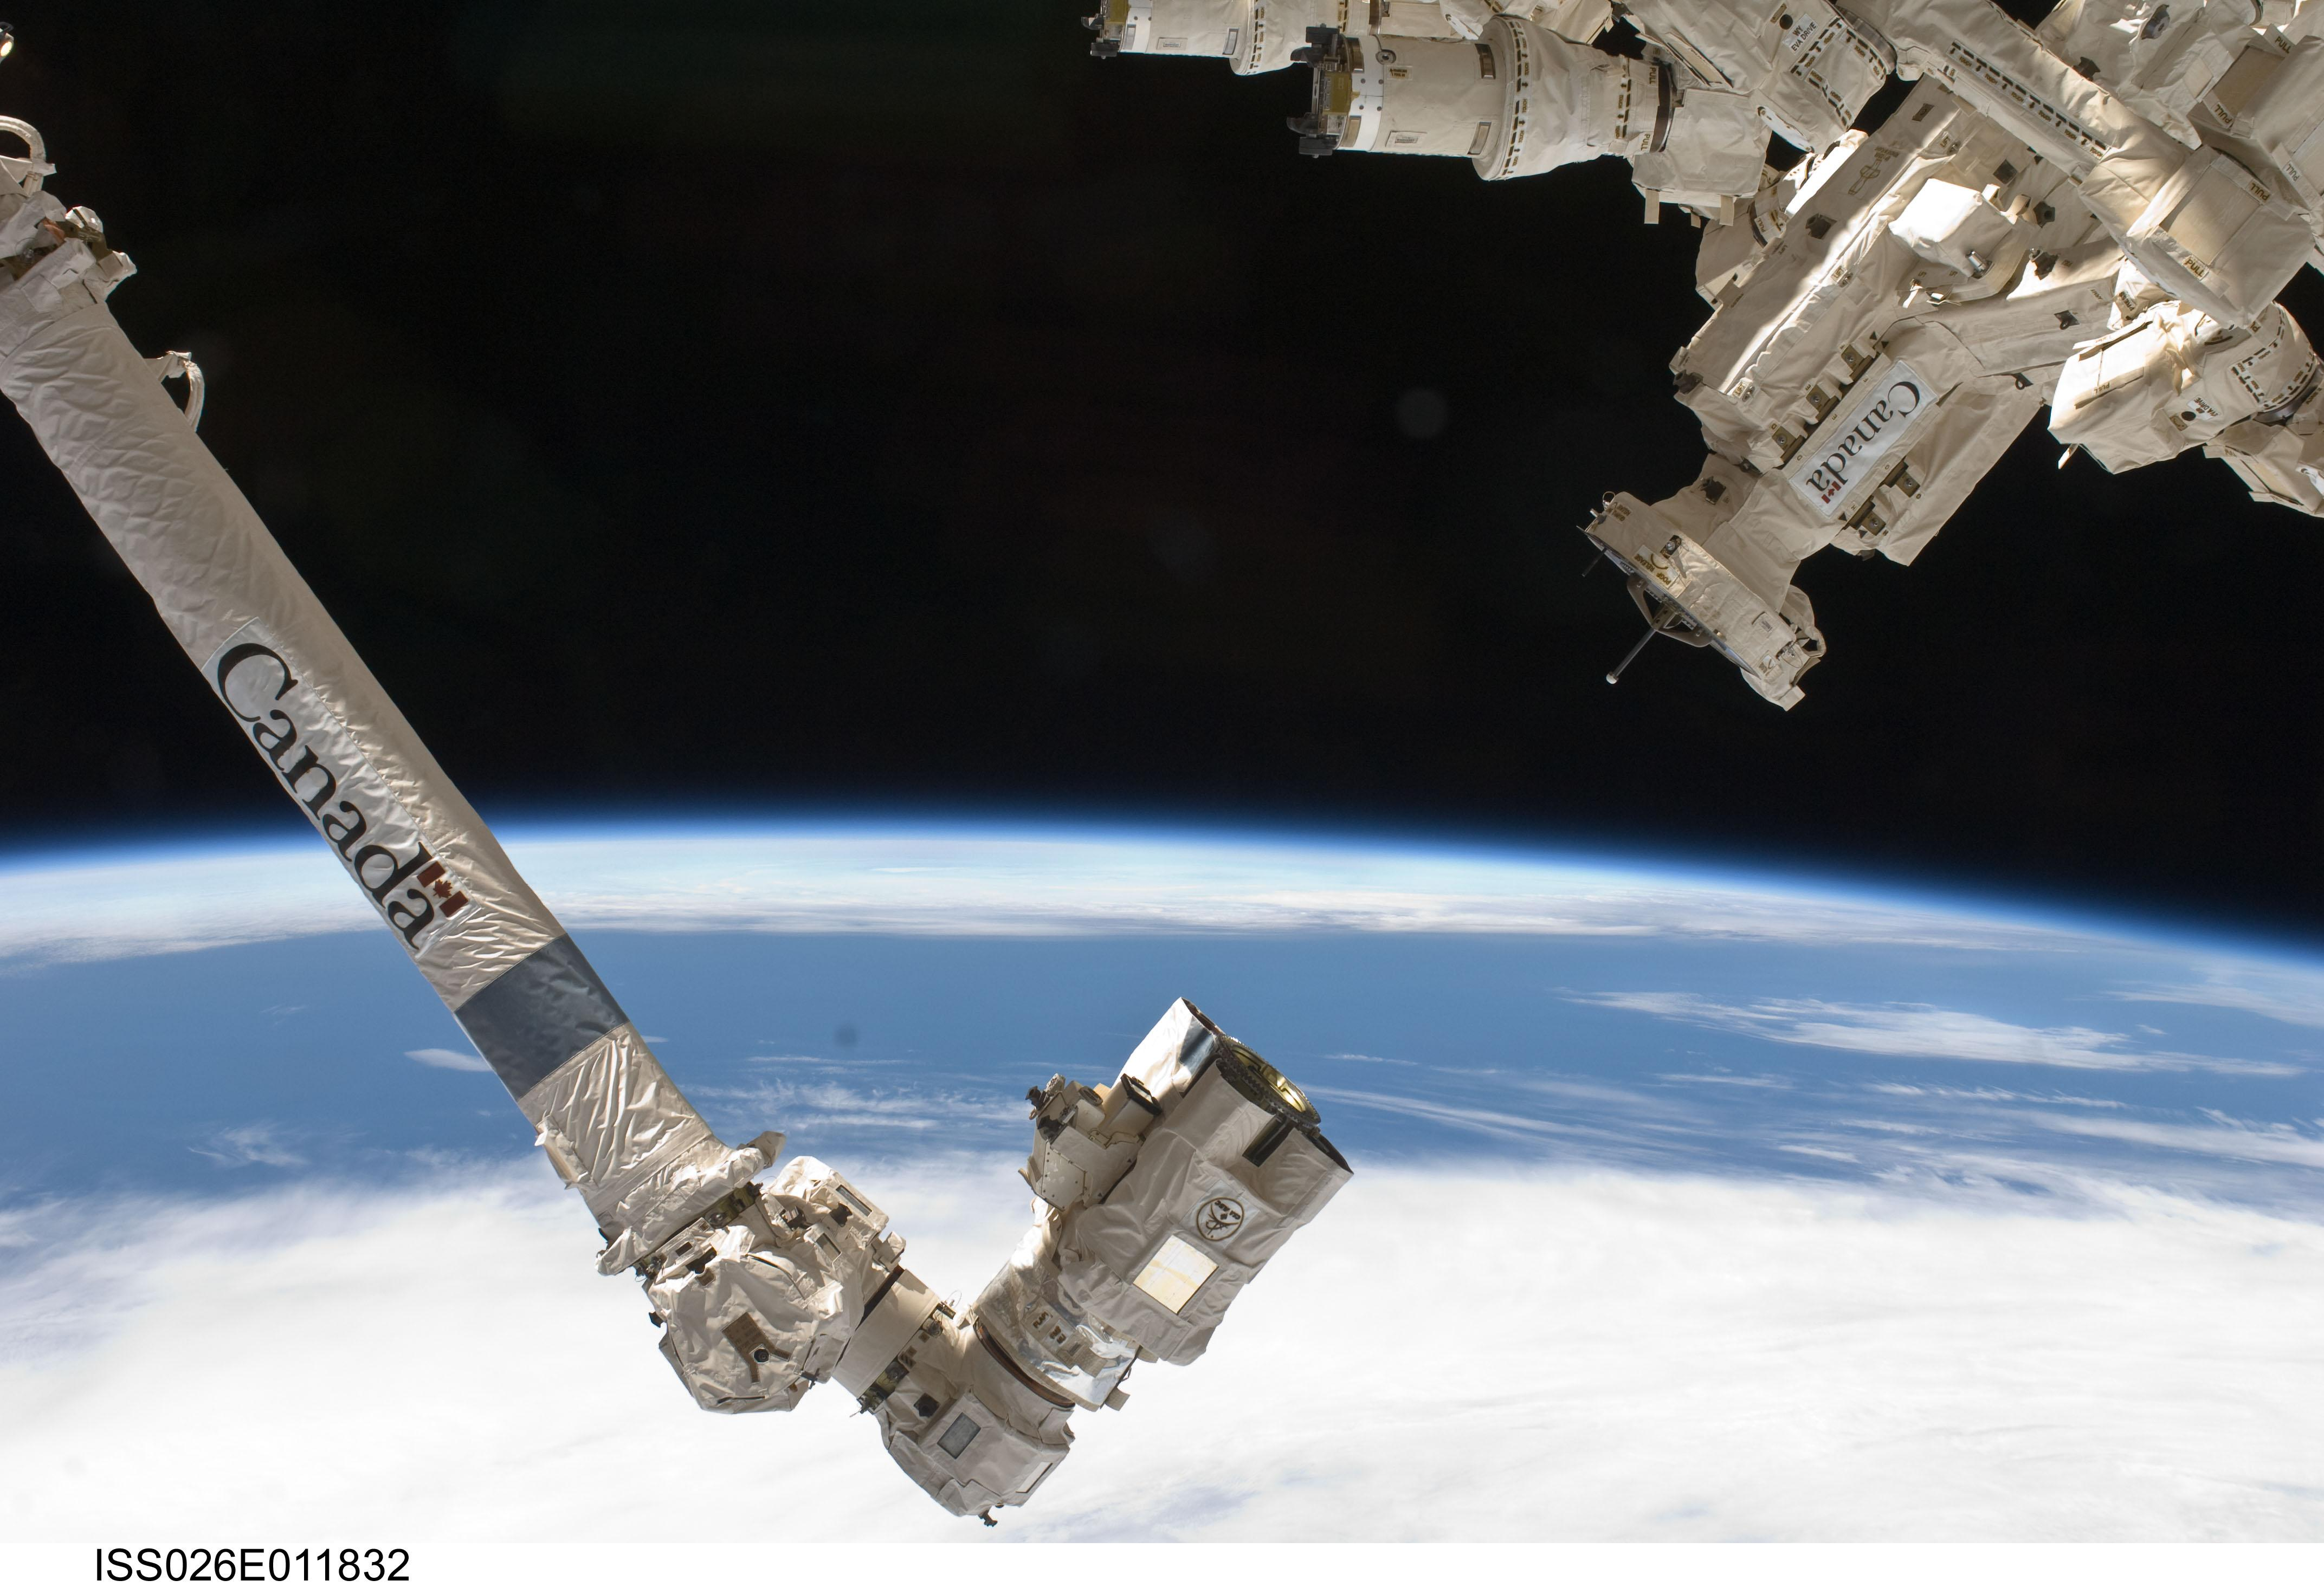 nasa space station robot - photo #26